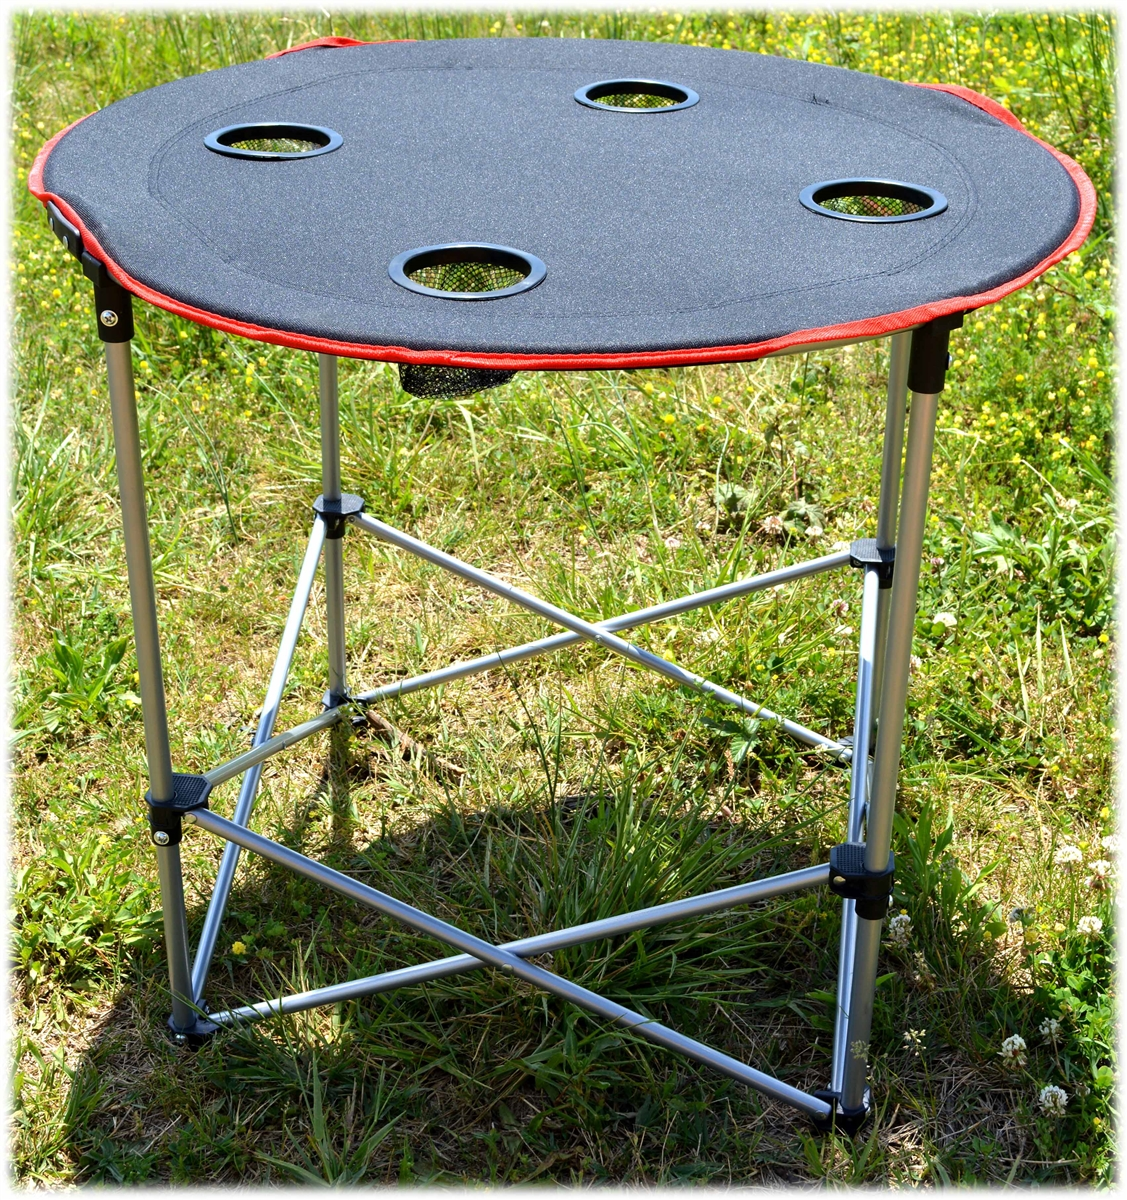 round folding camping table - 35900 WHZIXQZ